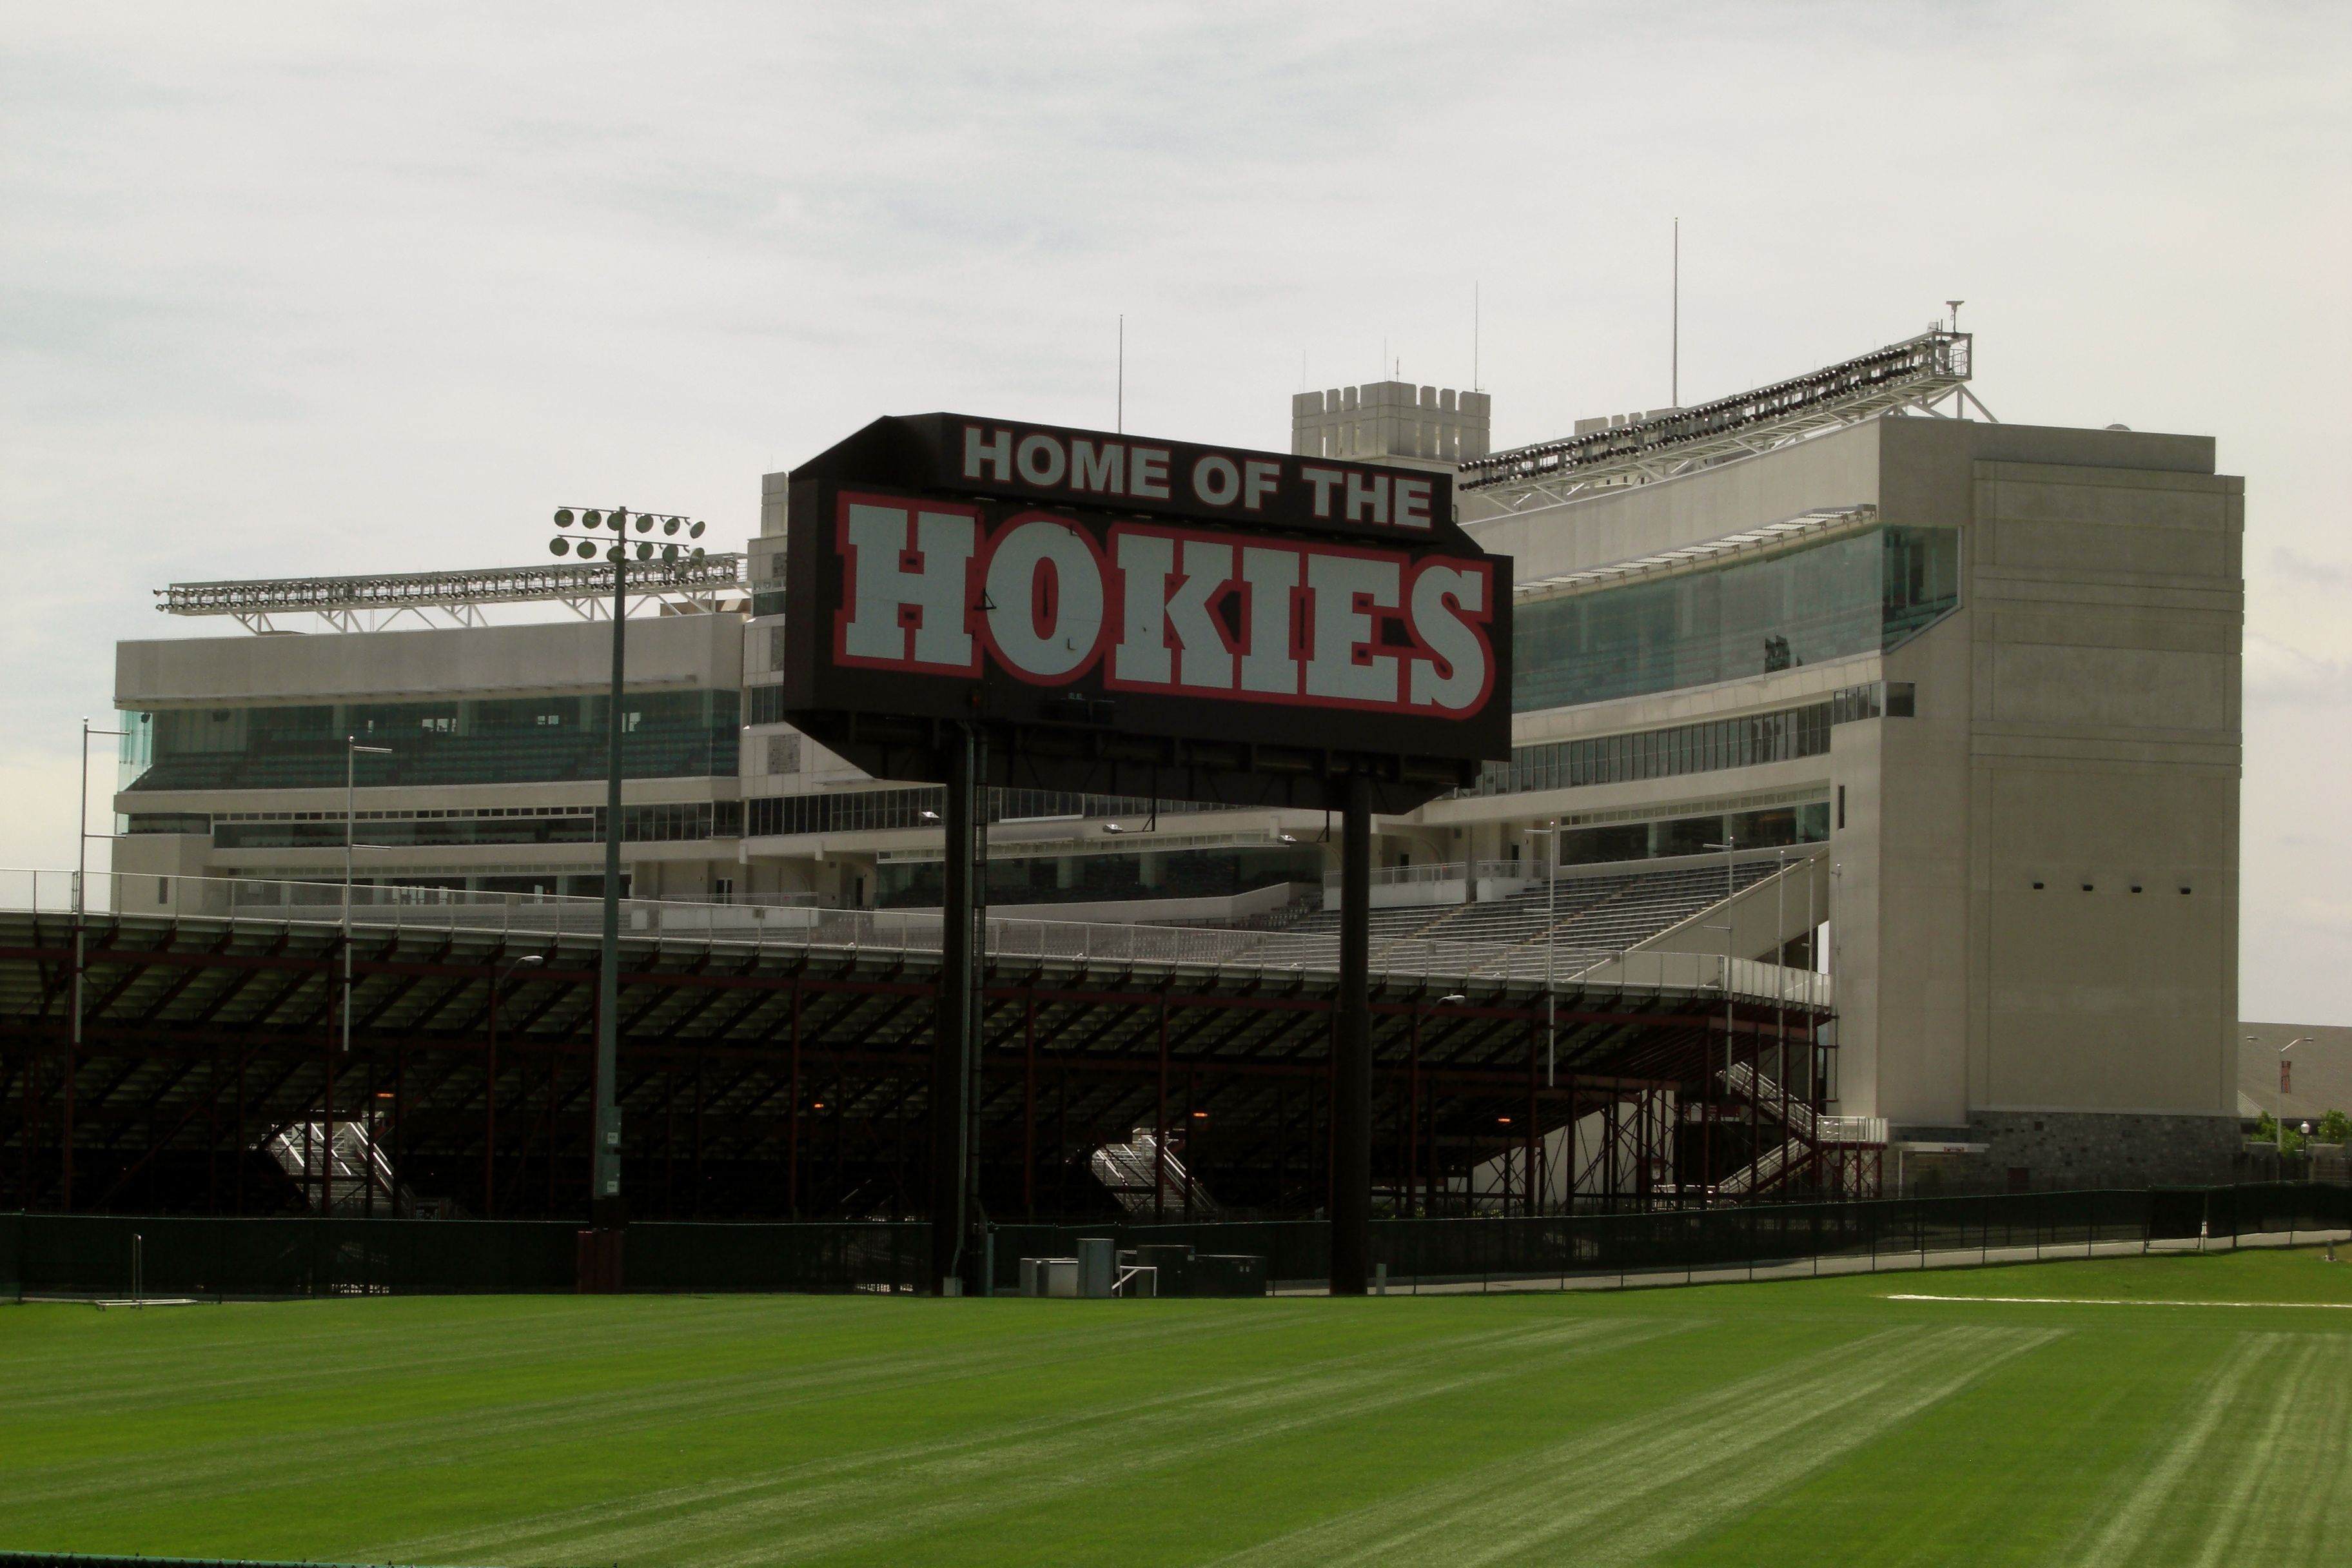 lane stadium FileLANE STADIUM HOKIES.JPG Wikipedia